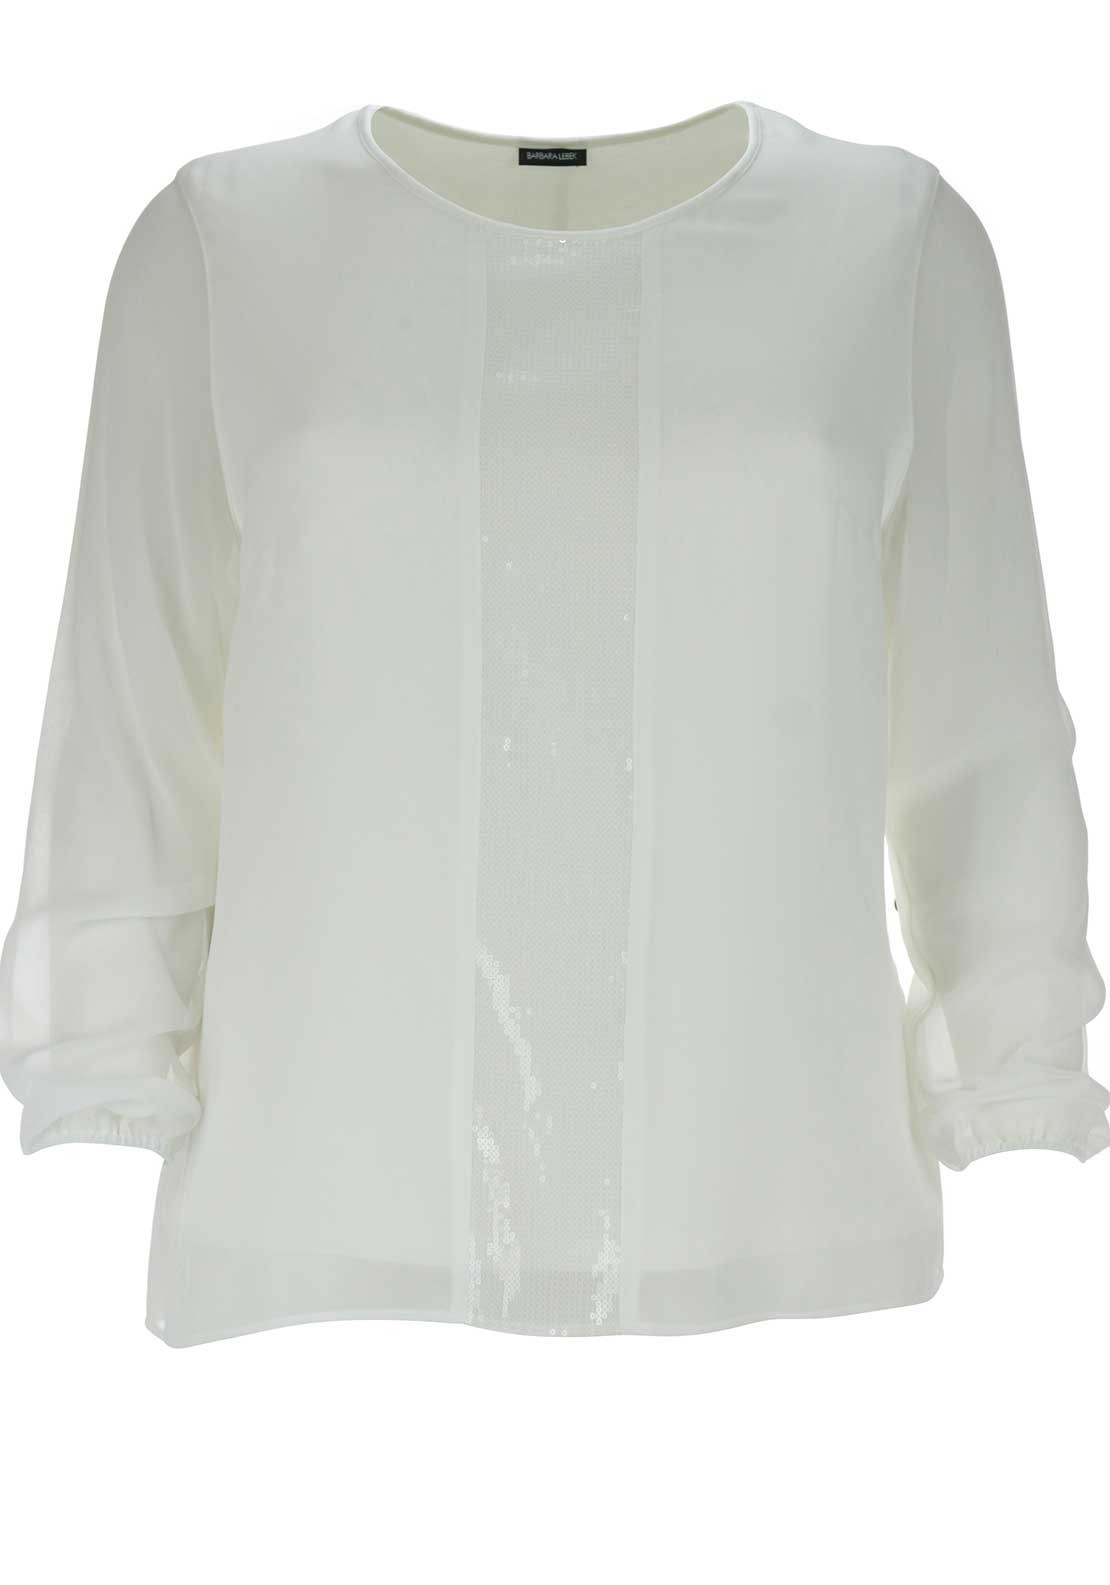 Barbara Lebek Sequin Panel Top, White